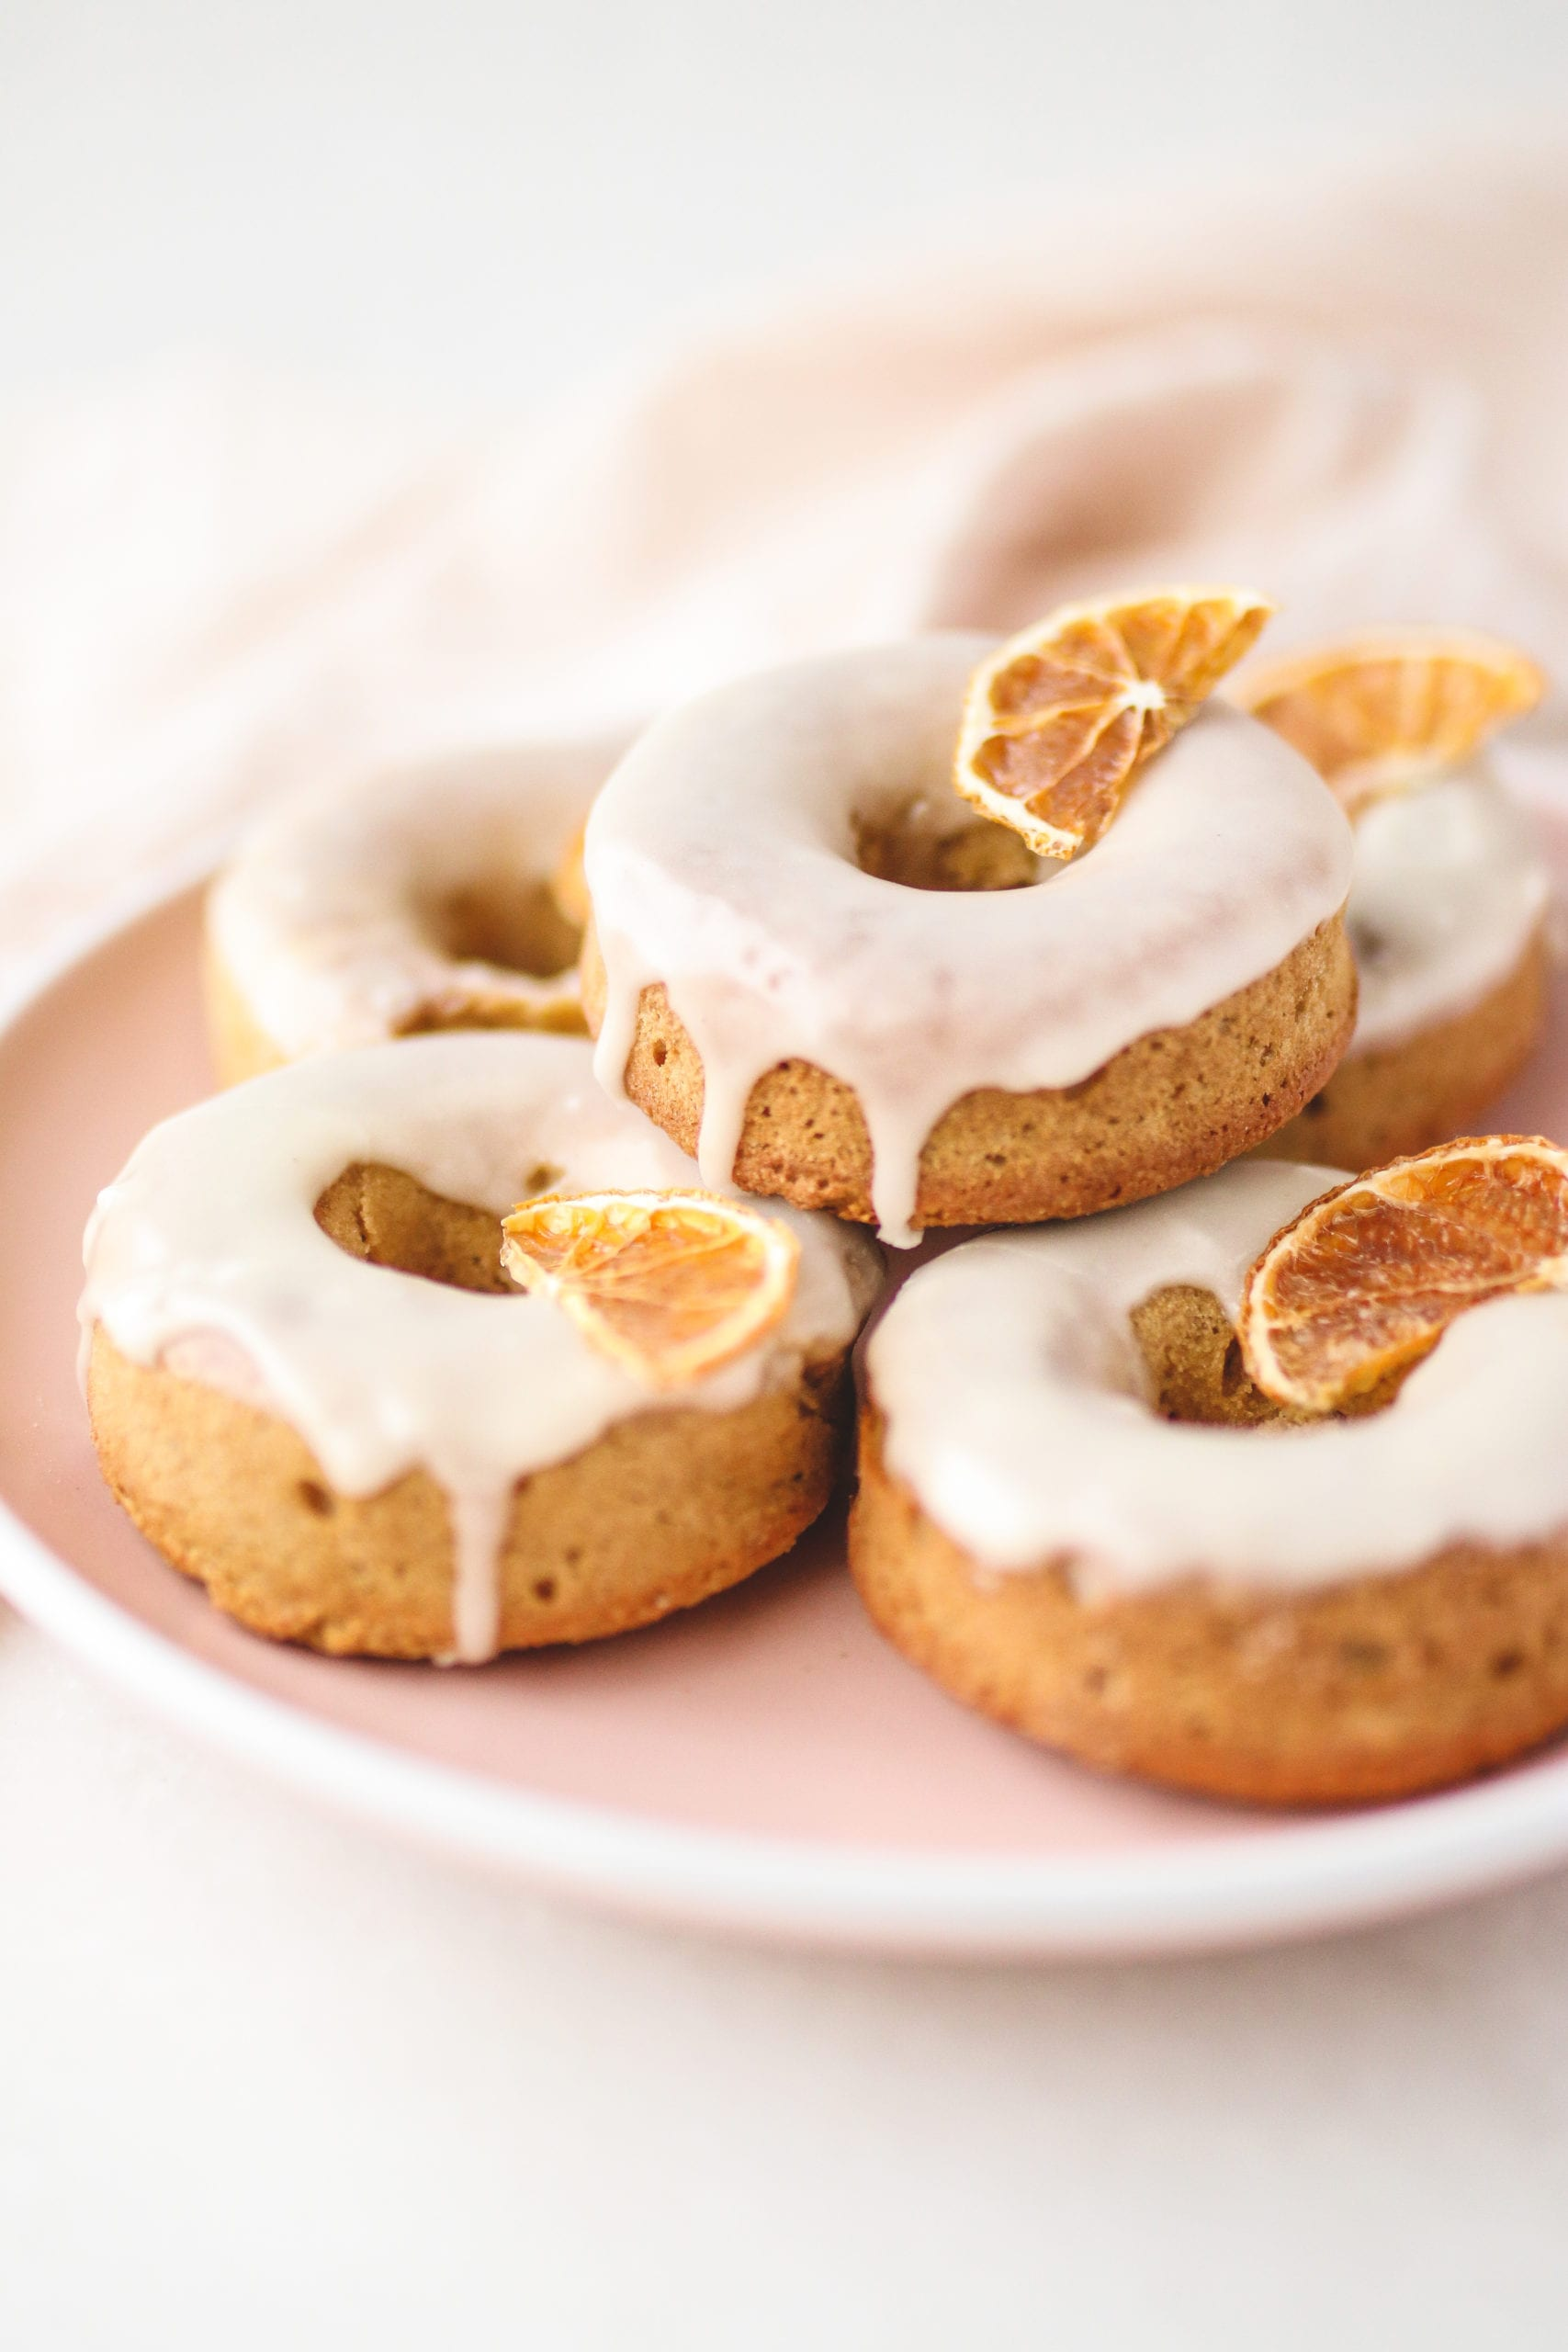 straight forward image of donuts on a tray. Delicious spring desserts.